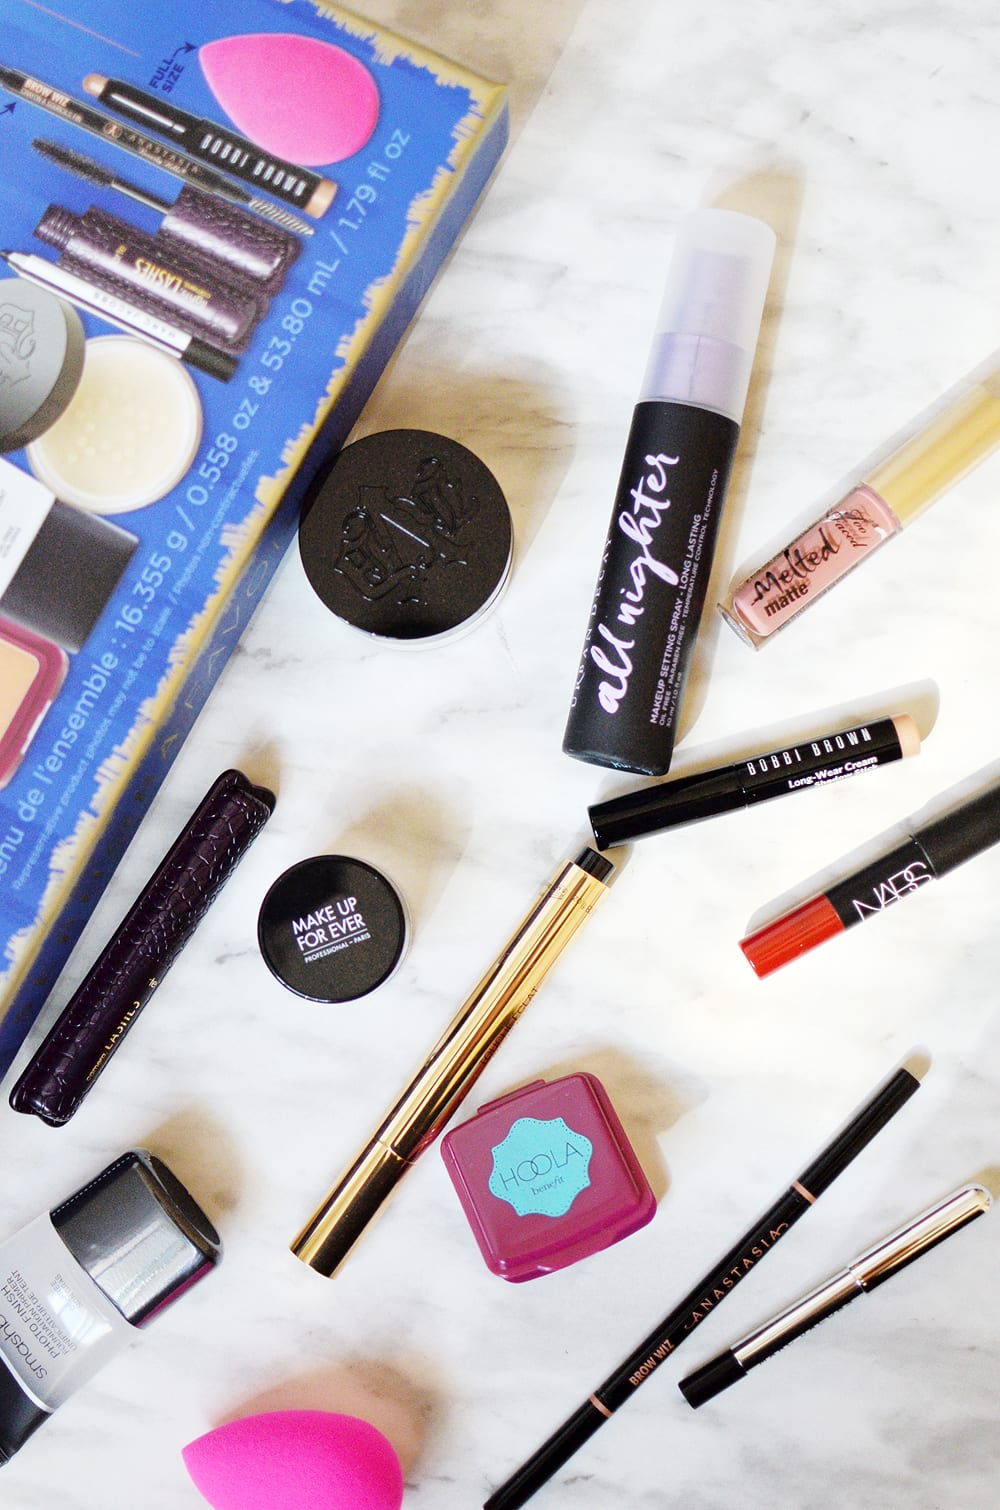 The 2017 Sephora Favorites Superstars Everyday Must Haves set comes jam-packed with everything for the face, eyes and lips with 10 mini's, 3 full-sized!